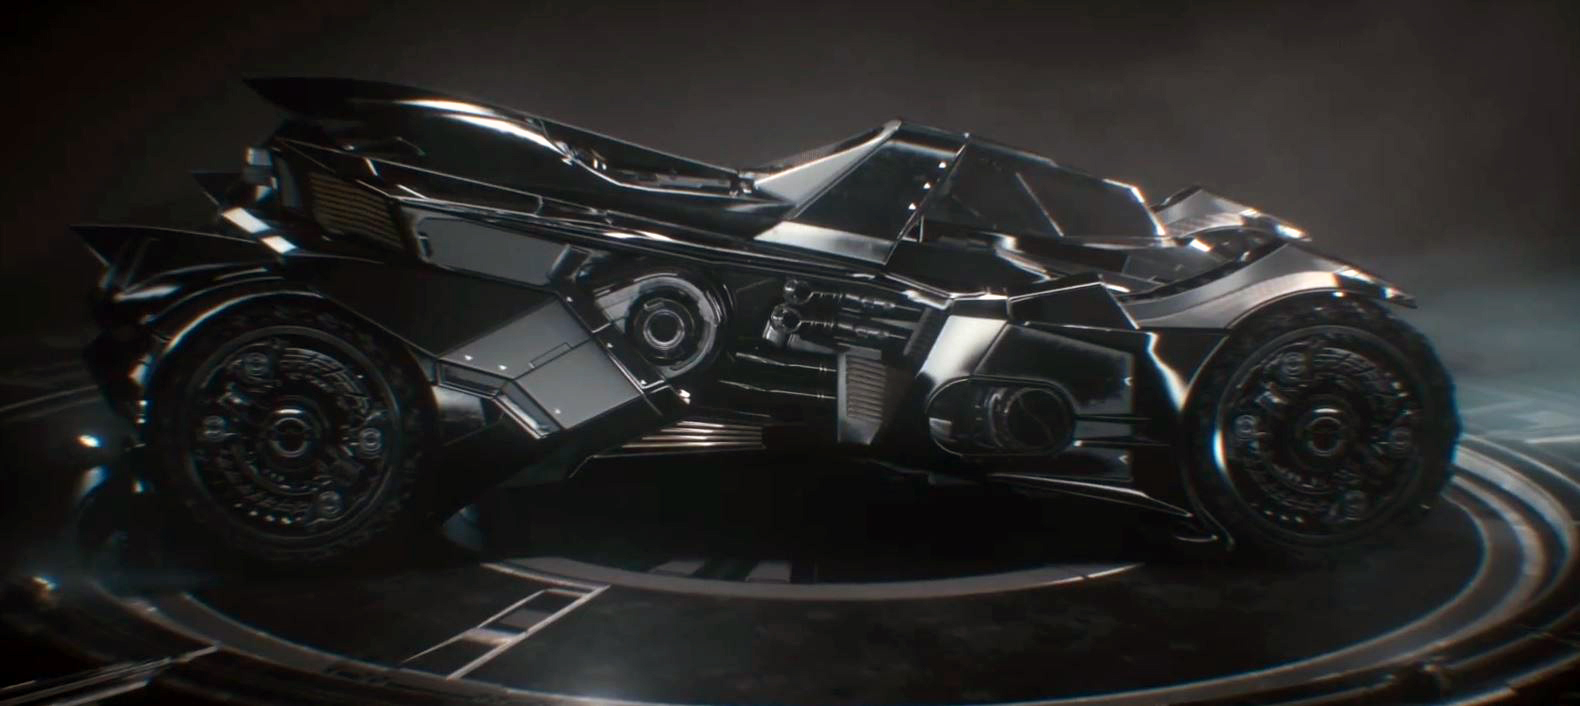 The new Batmobile, looks pretty sick